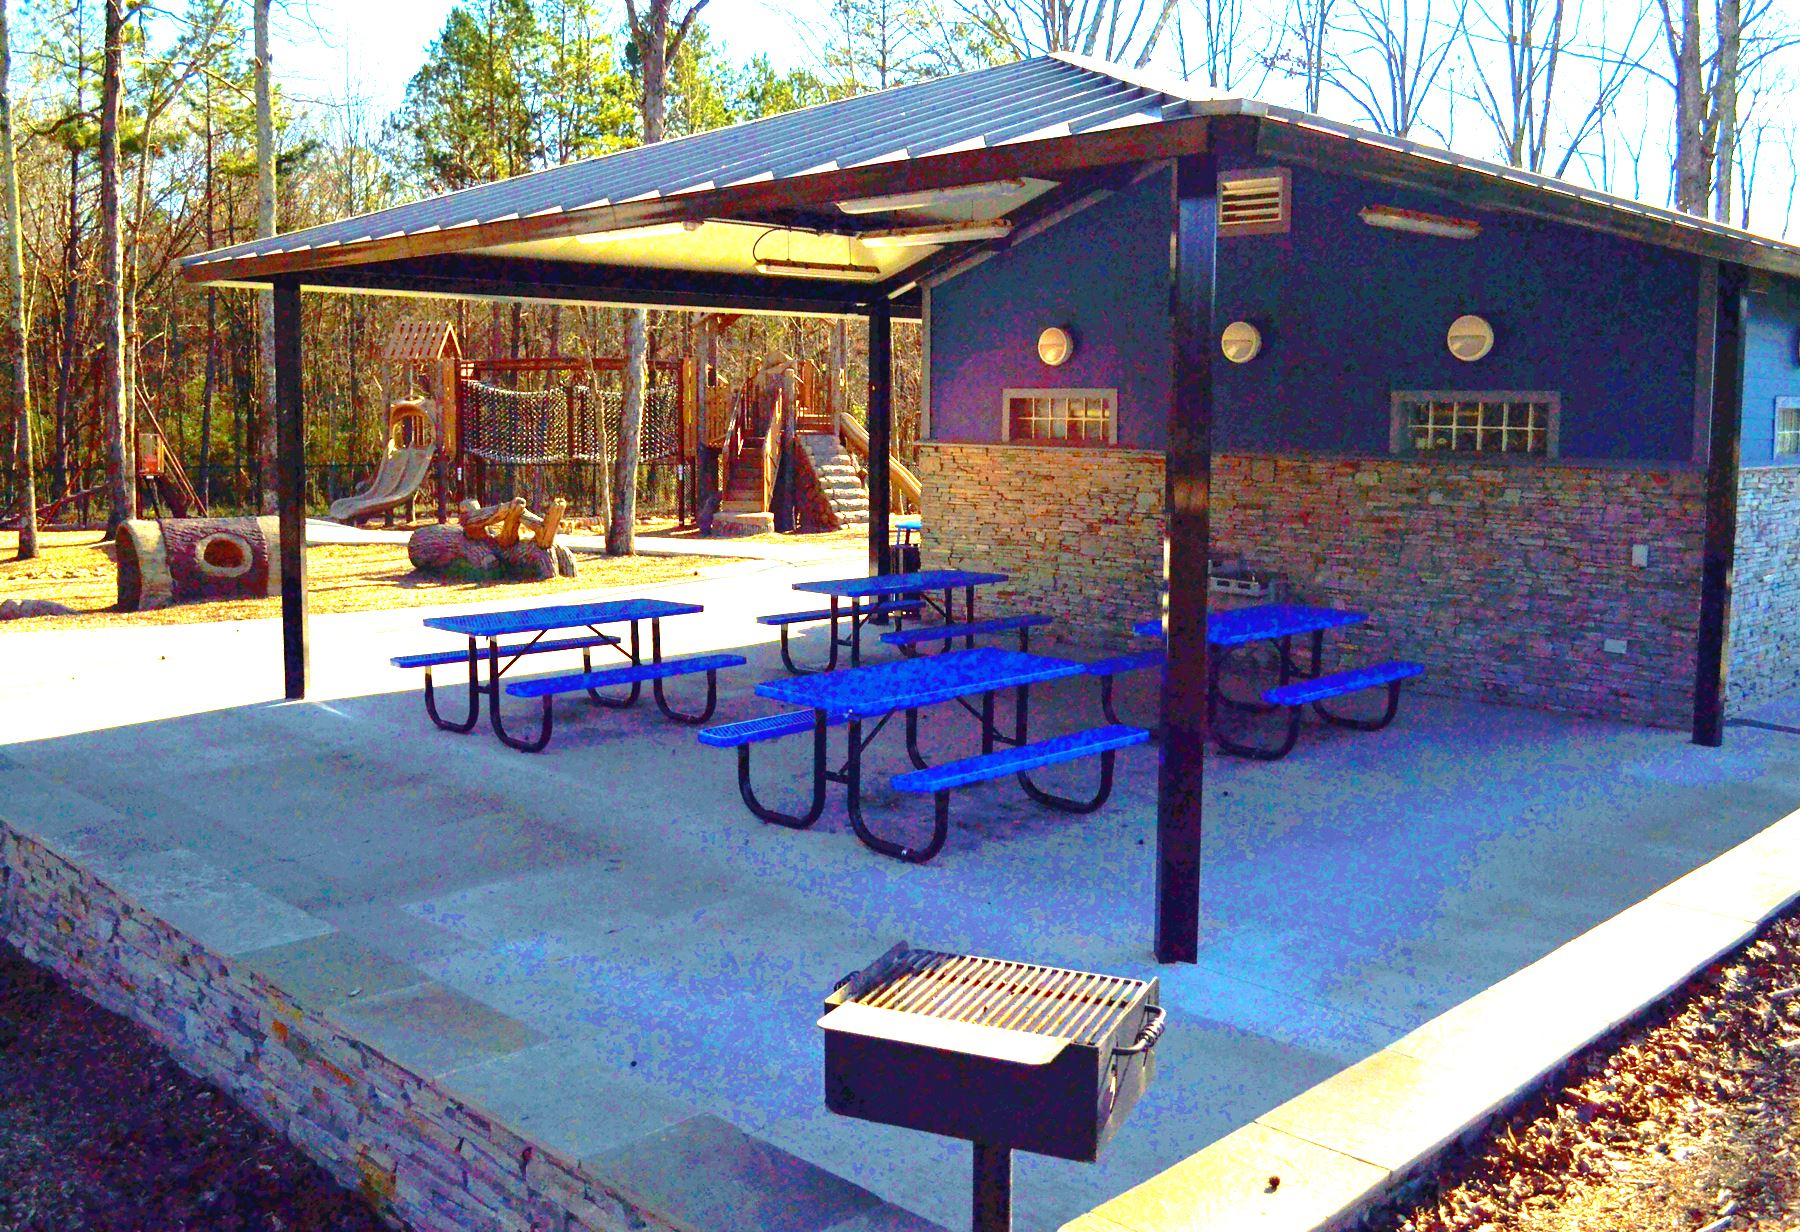 Crooked Creek Park small shelter with 4 picnic tables